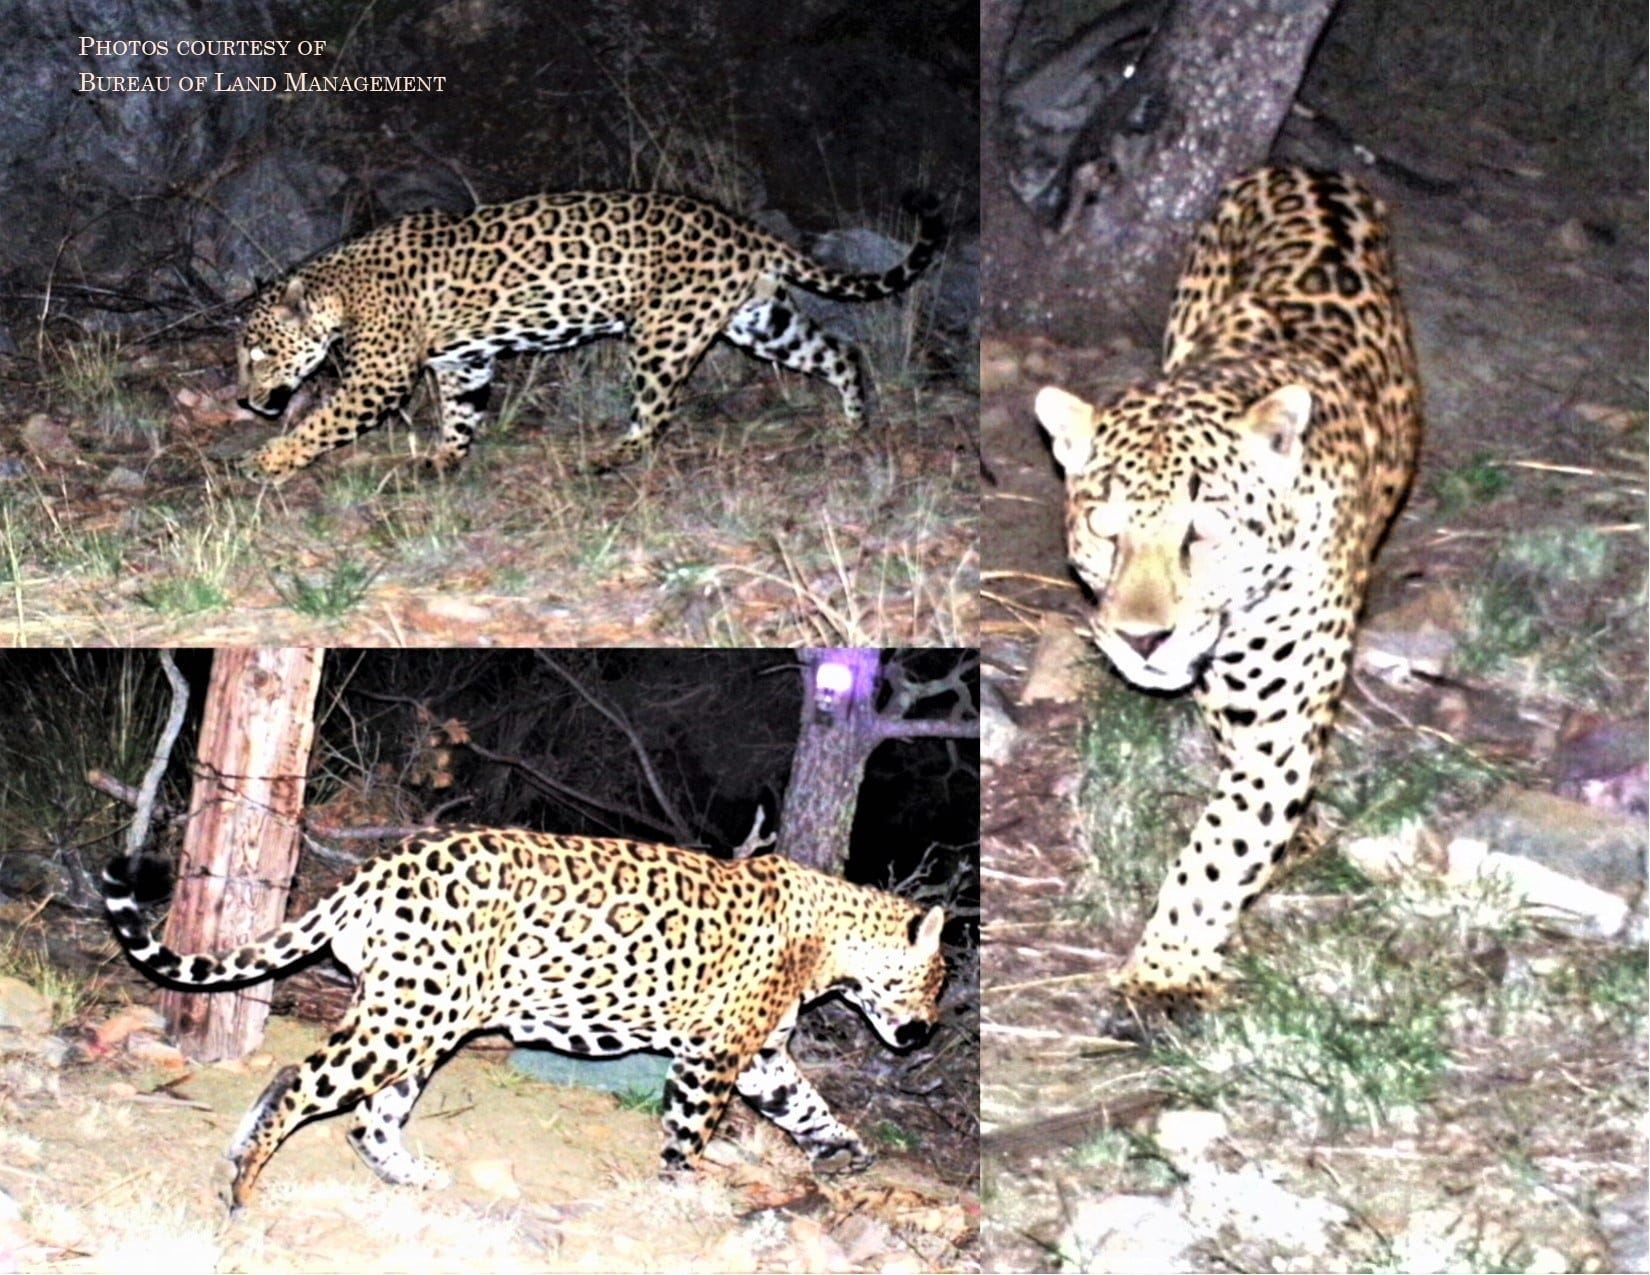 These photos of a male jaguar were captured by a trail camera Jan. 6 in the Dos Cabezas-Chiricahua Mountains region.